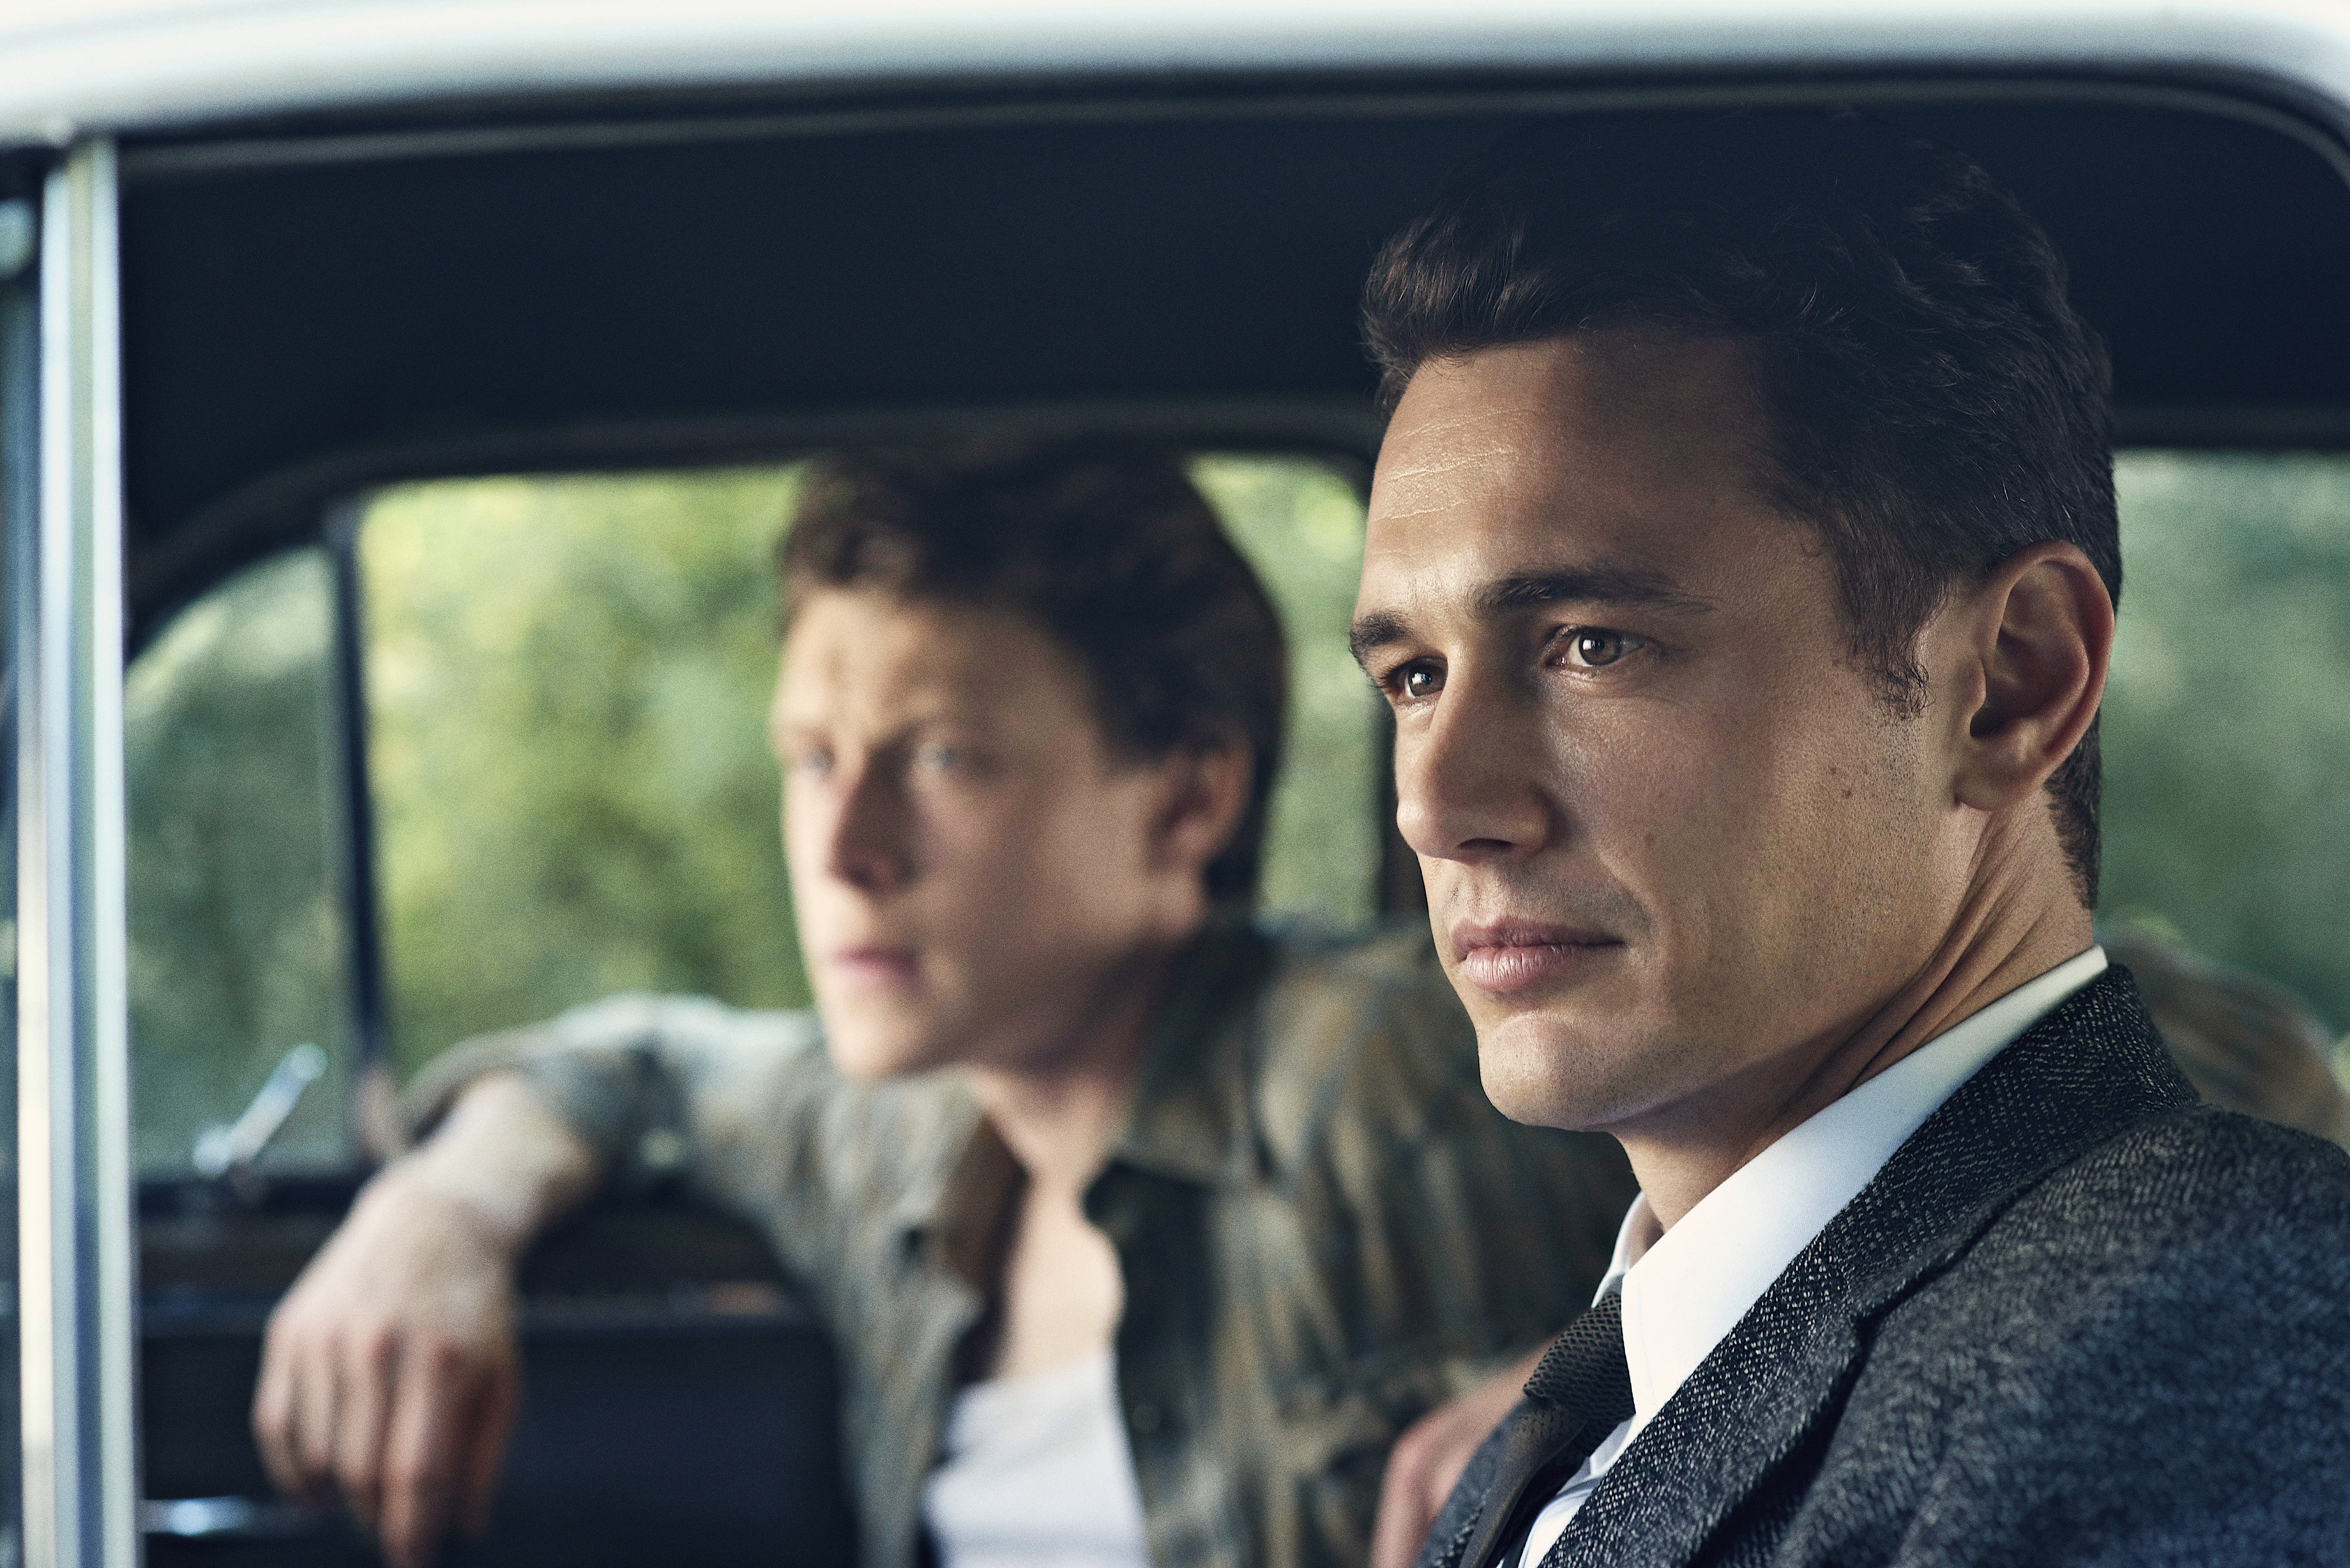 How J.J. Abrams and Hulu Brought Stephen King's '11.22.63' to TV